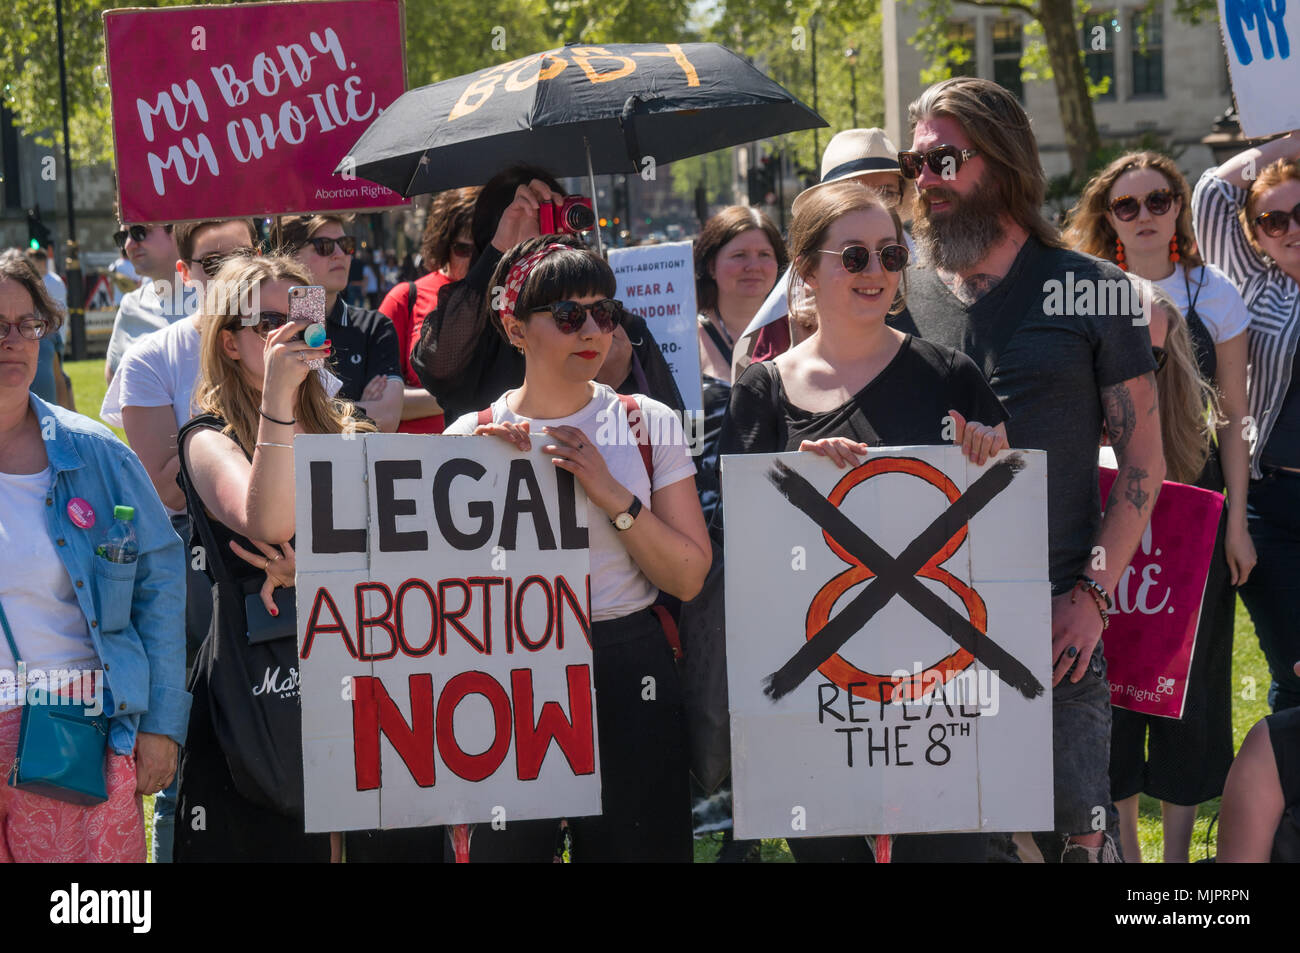 London, UK. 5th May 2018. Women in the abortion rights campaign hold posters calling for the repeal of the Irish 8th amendment against abortion at a rally in Parliament Square before the annual March for Life UK by pro-life anti-abortion campaigners was to march to a rally there. They insisted on the right for women to choose and opposed to any increase of restrictions which would lead to the problems we saw before the 1967 Abortion Act, when women risked their lives in back street abortions. They called for an end of the harassment of women going into clinics, and for women in Northern Irelan - Stock Image